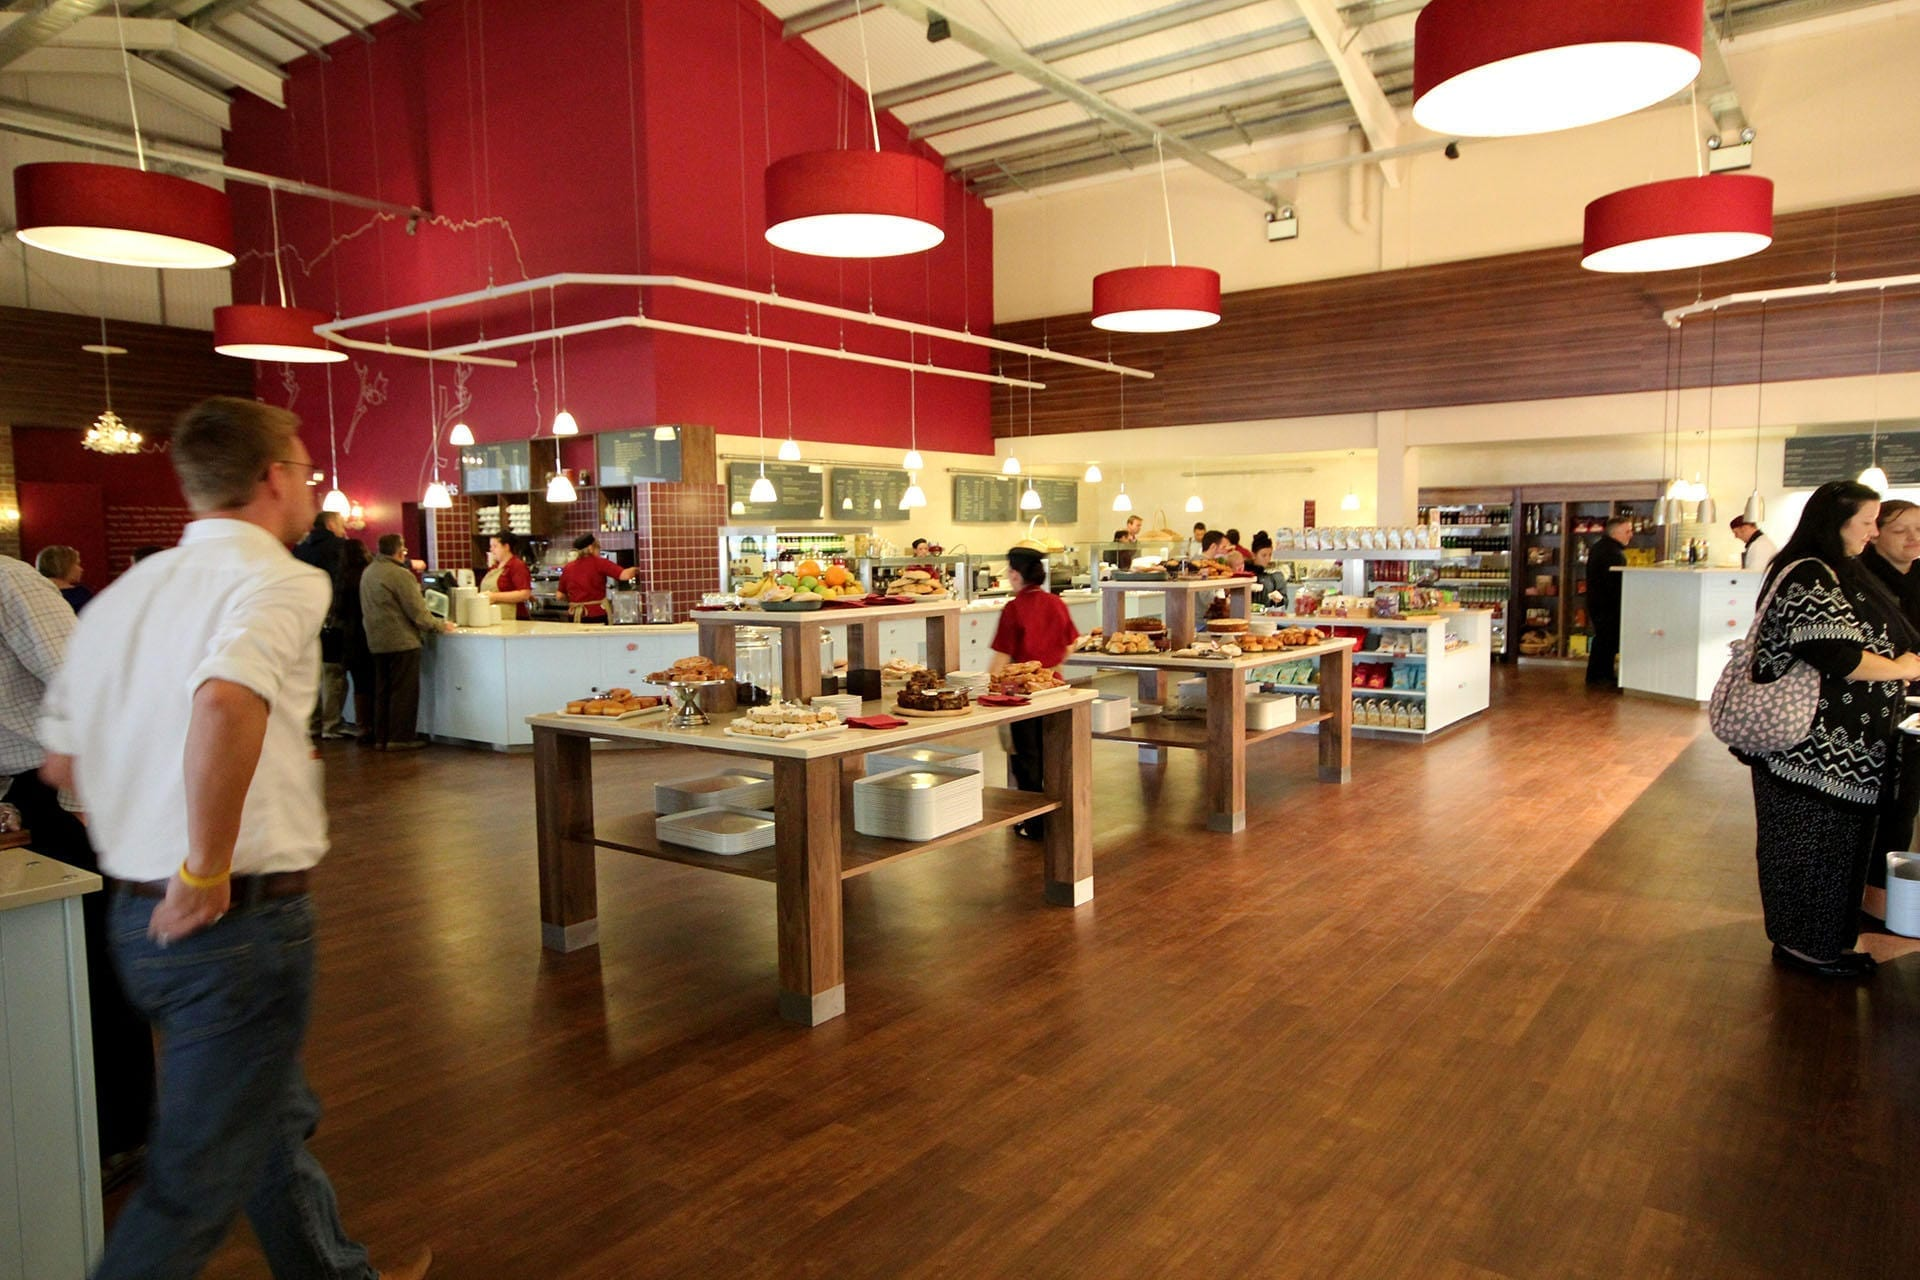 CommercialRestaurantCateringInteriorsDesignEquipment-RuxleyManorGardenCentre-SPACEUK06